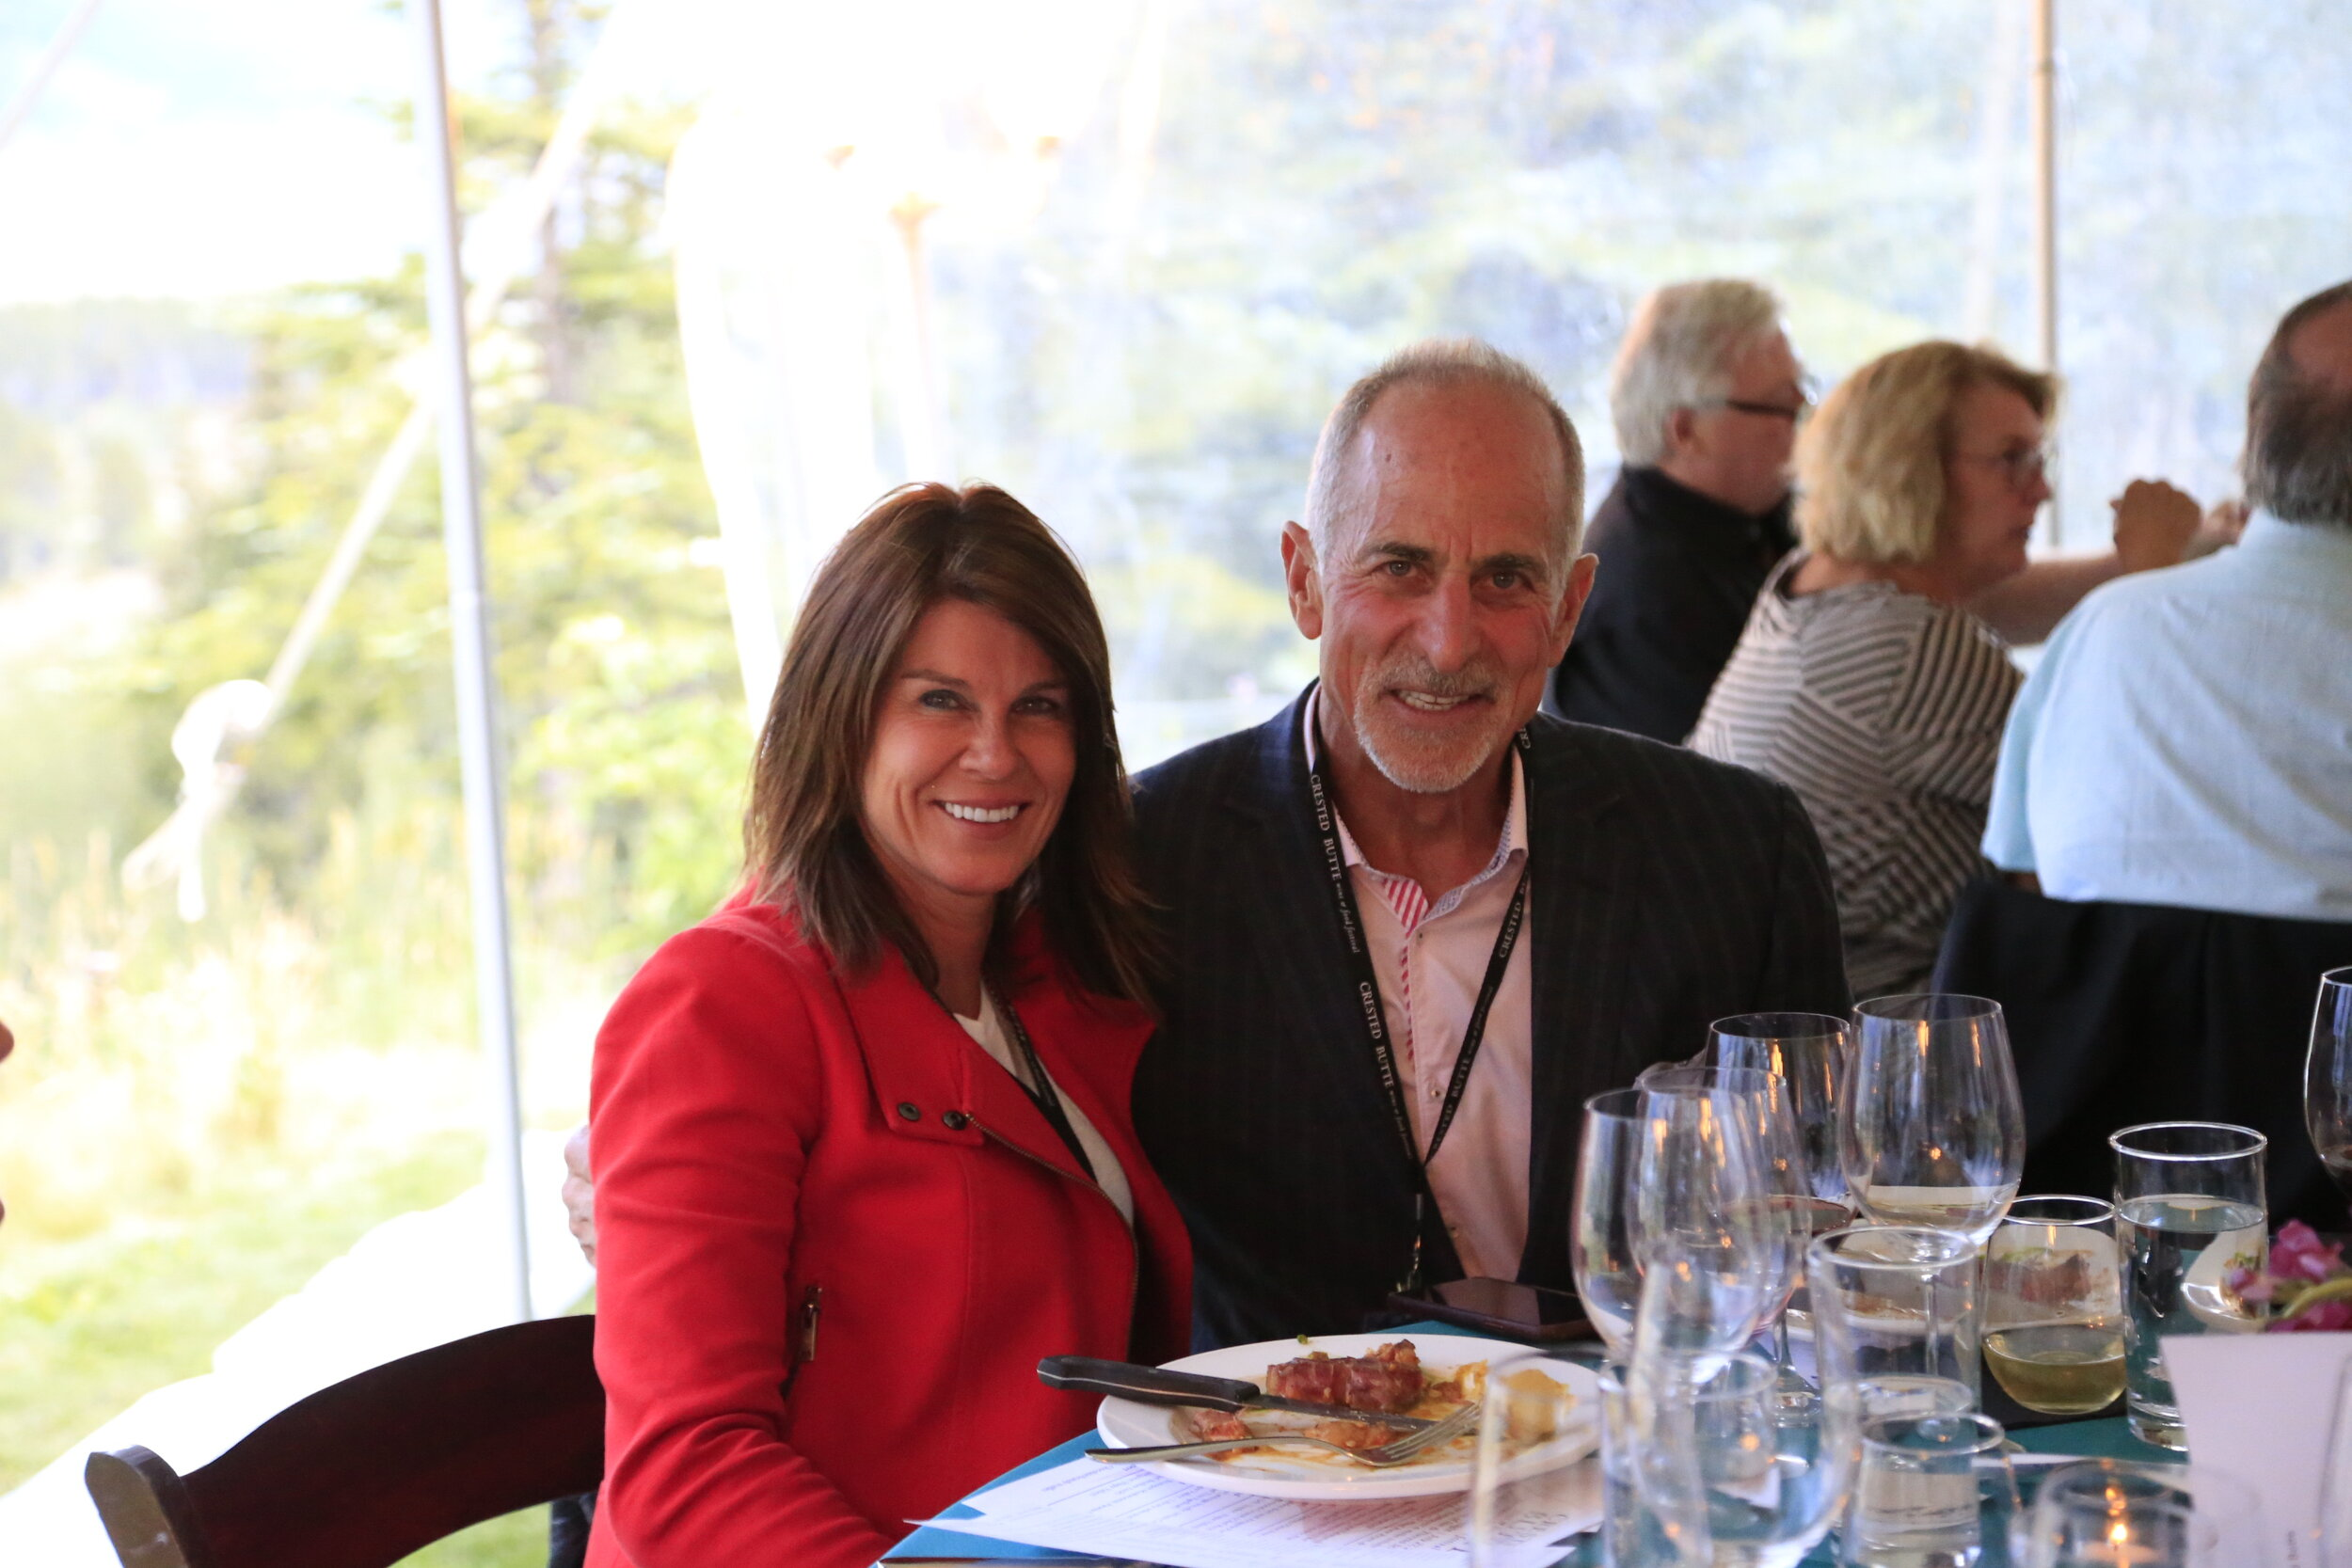 Theresa Lydick and Jeff Hermanson at the 2018 Crested Butte Wine + Food Festival. Photo by Nathan Bilow.